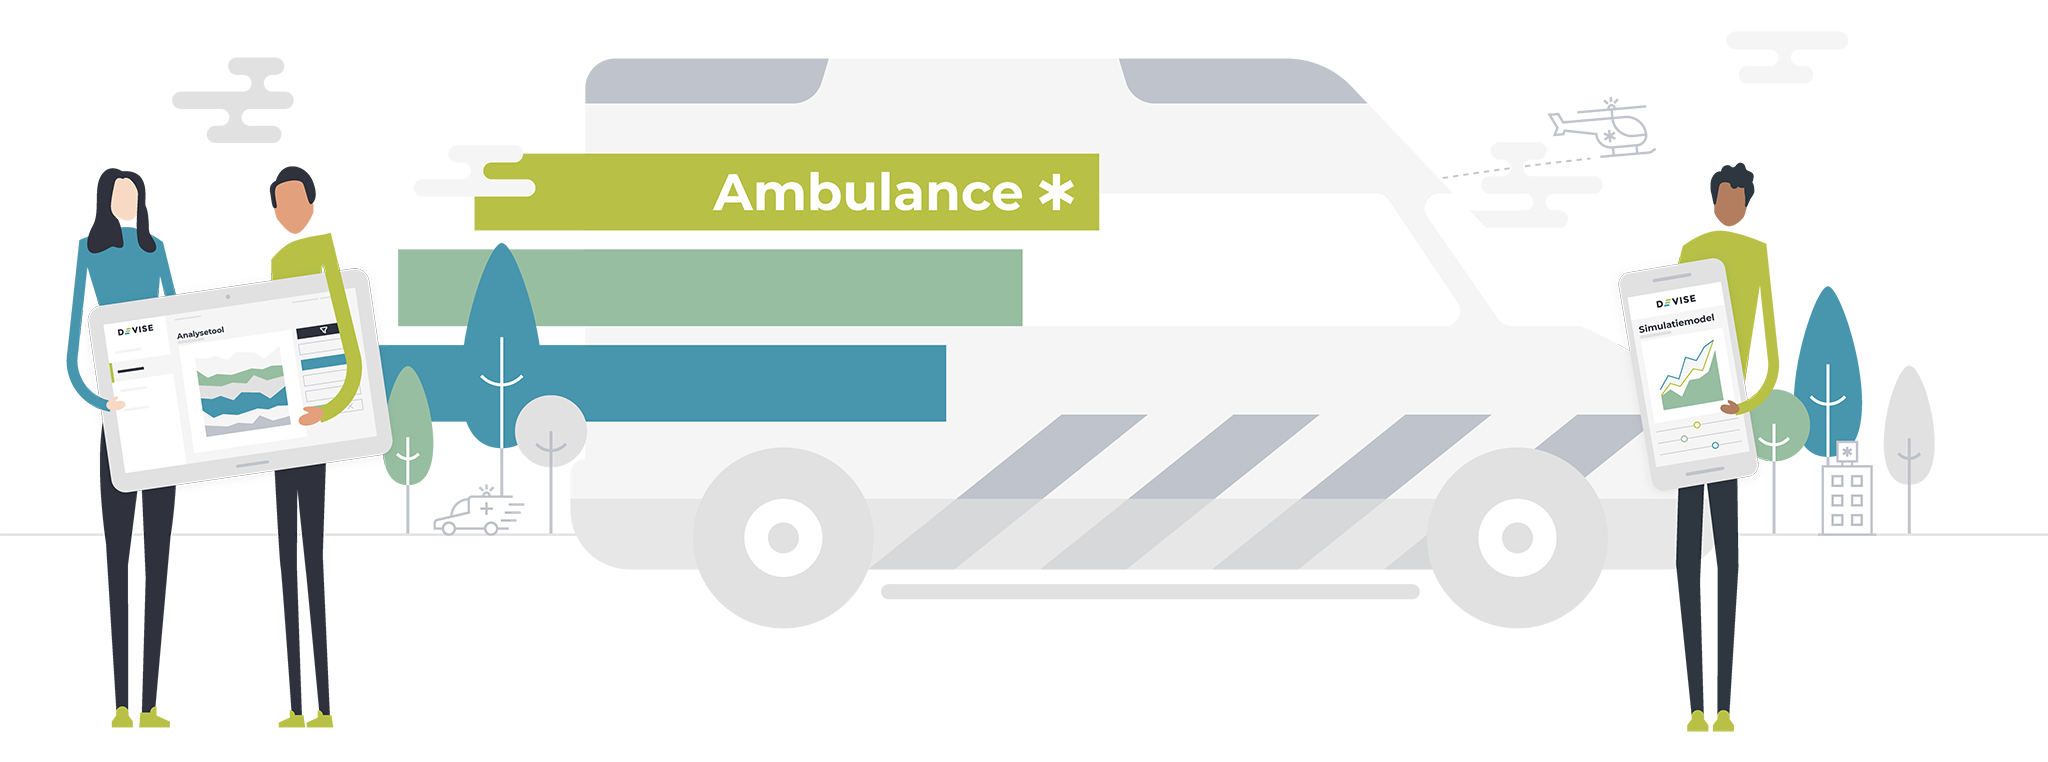 Data-analyse voor ambulancezorg